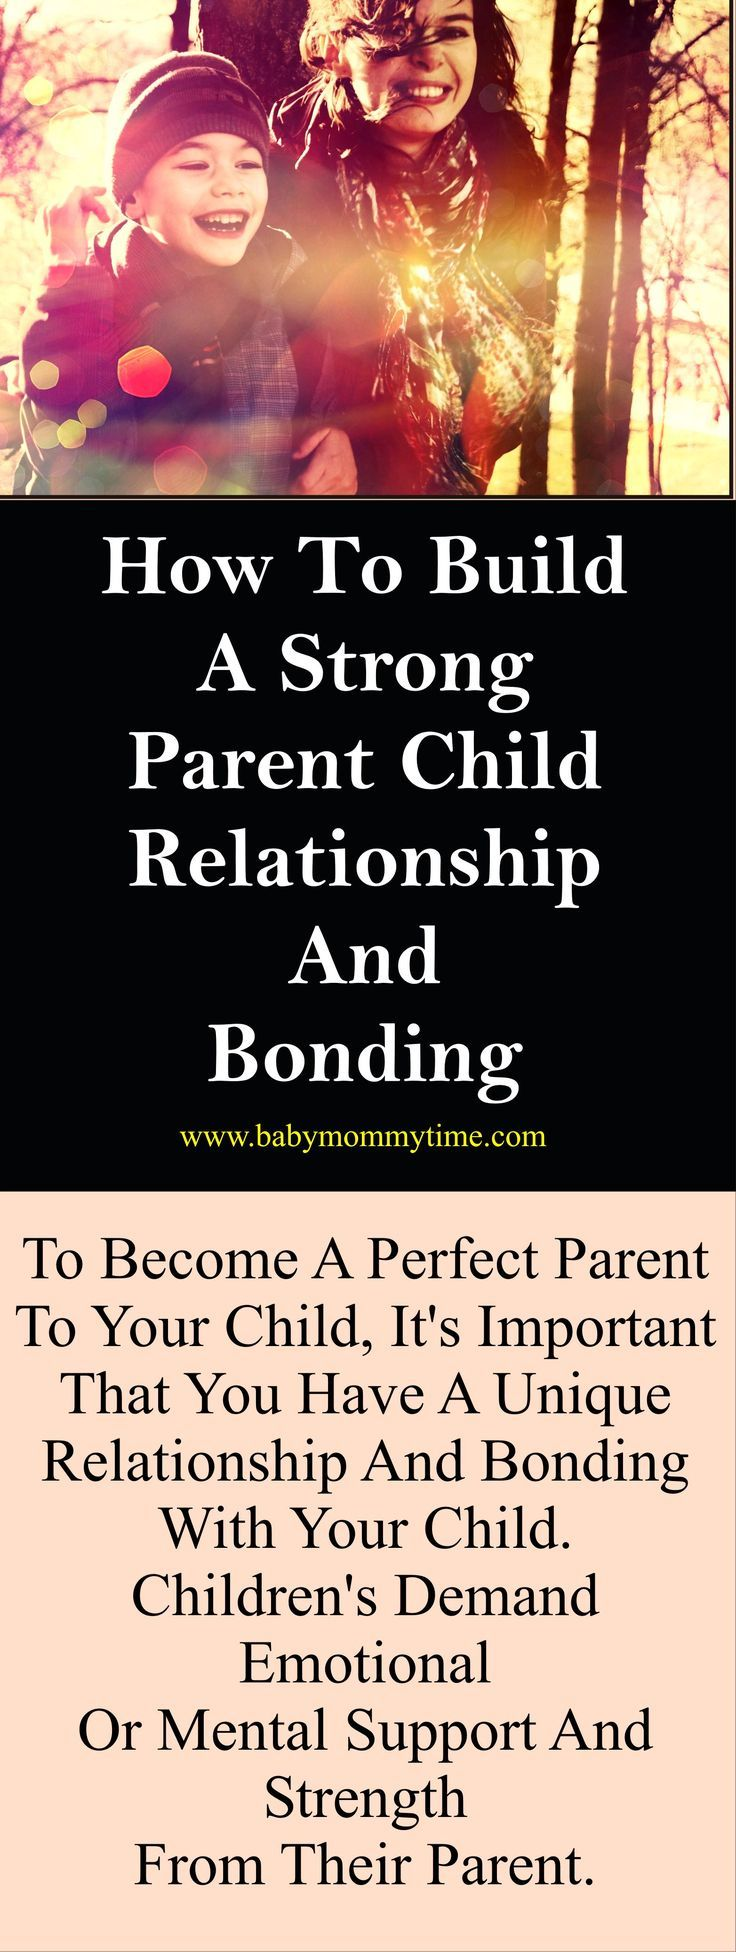 10 Ways to Build a Strong Parent Child Relationship. Parent Child Relationship, means a trust and unique bonding between the child & parent. To become a perfect parent to your child, it's important that you have a unique relationship and bonding with your child. #babymommytime #parent #childlife #bondingwithchild